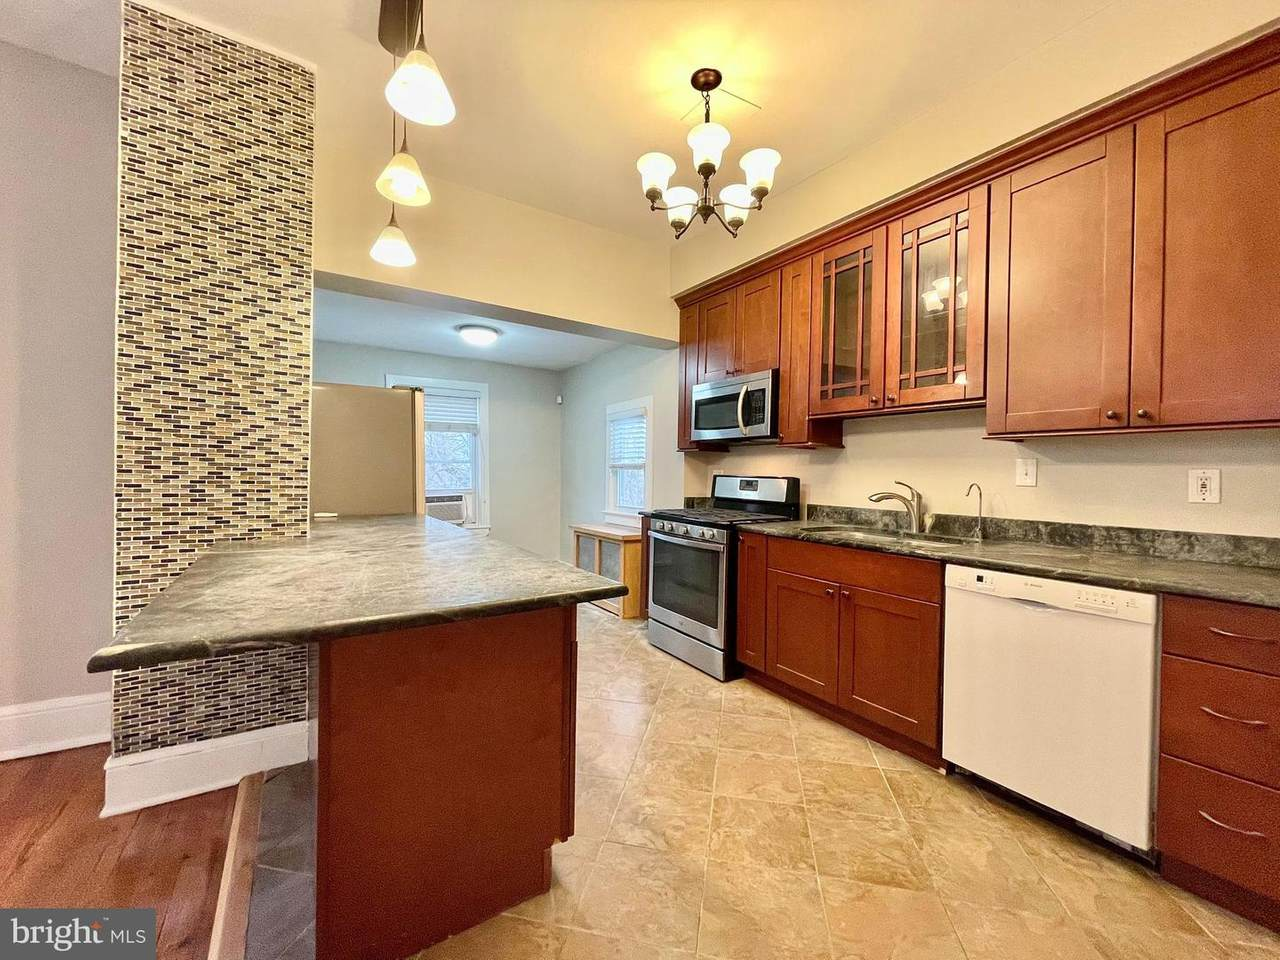 214 Witherspoon Street - Photo 1